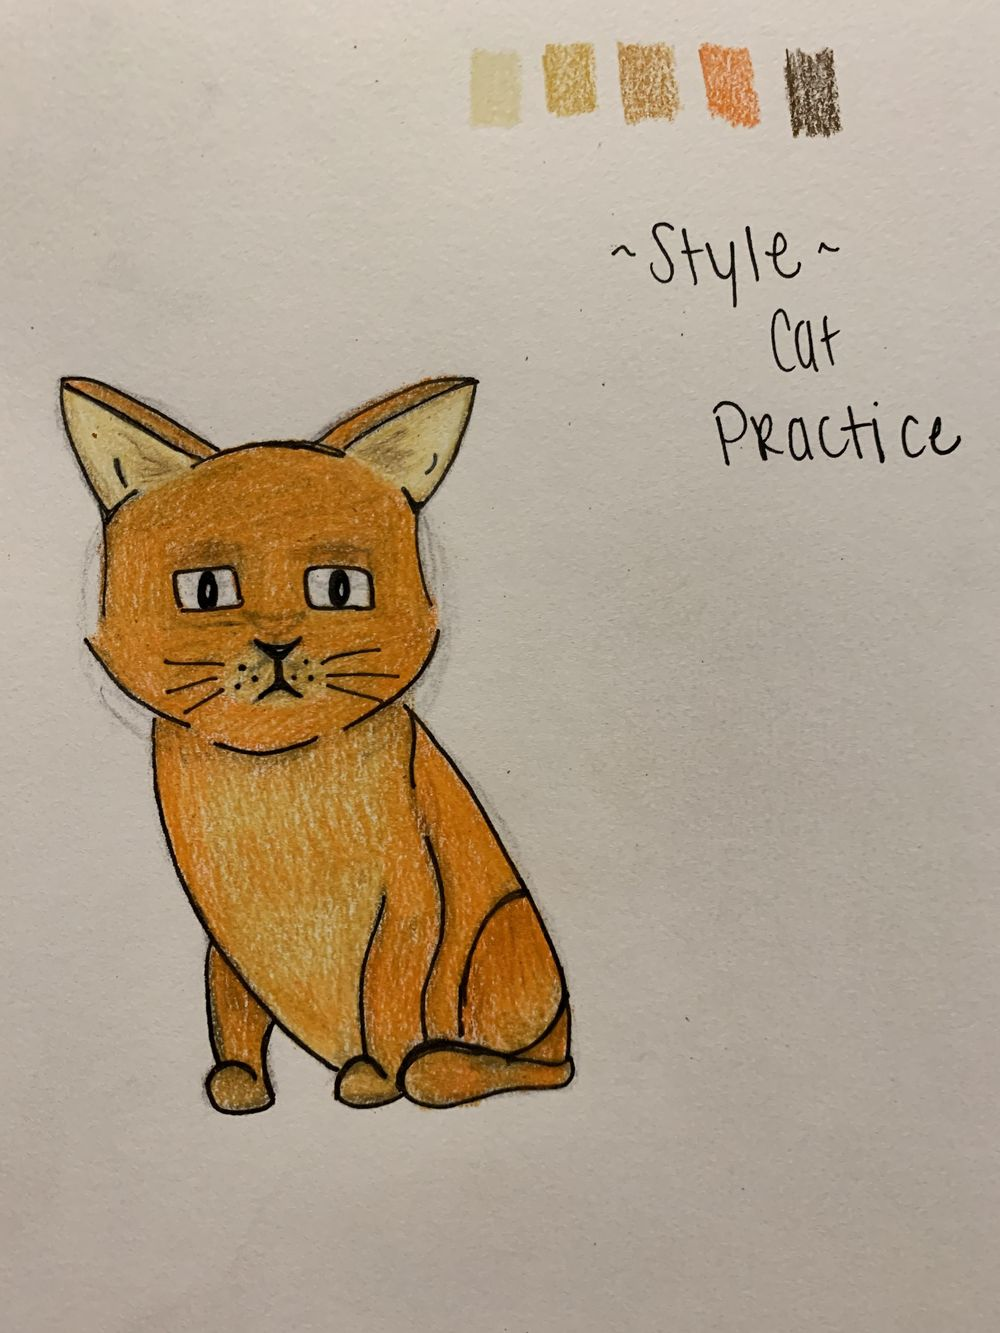 Stylistic Cat - image 1 - student project